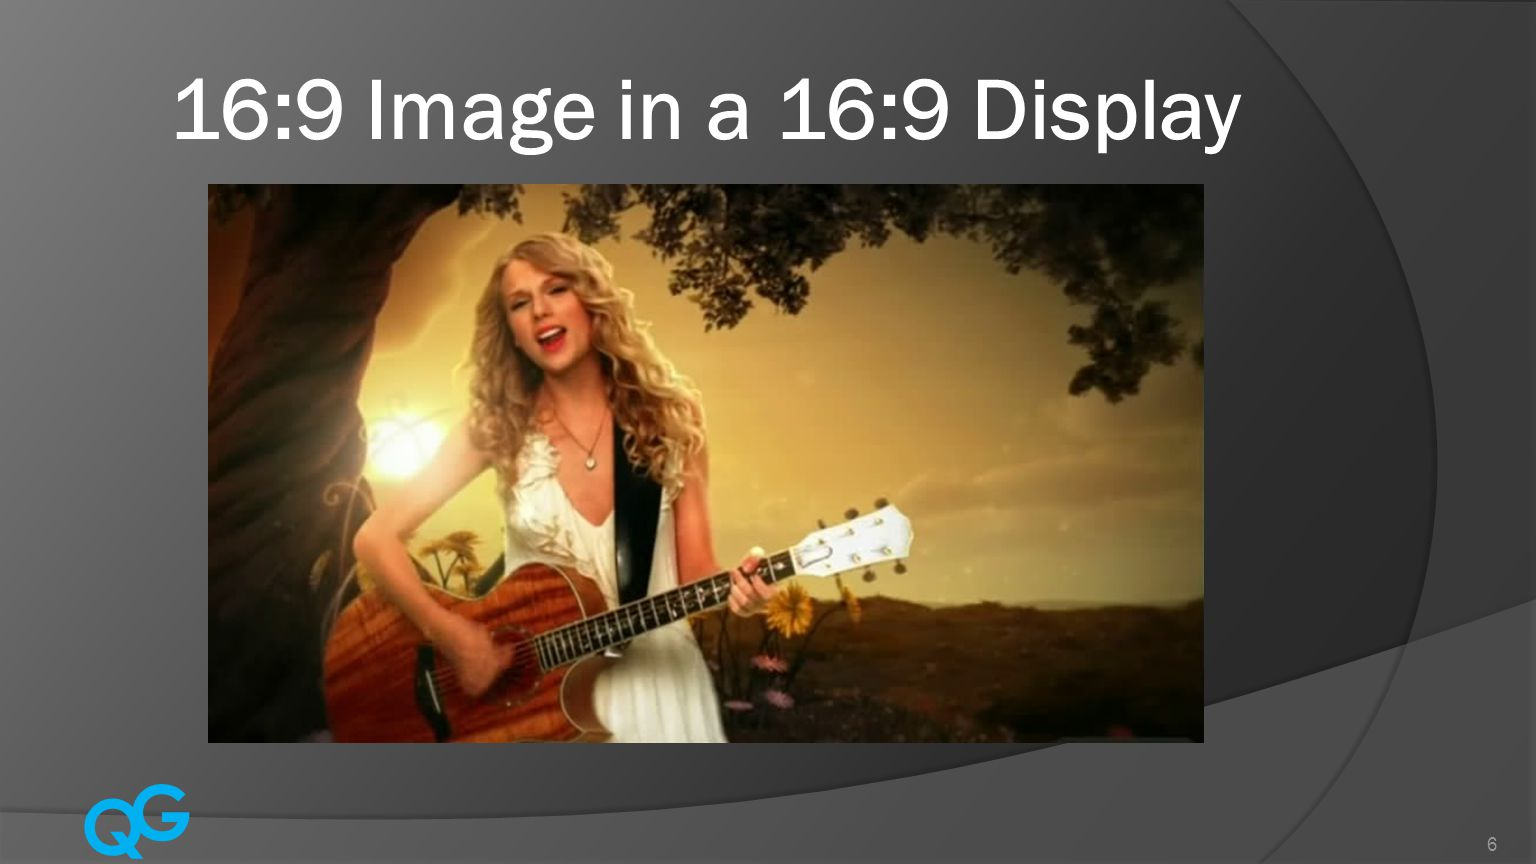 Q G 6 16:9 Image in a 16:9 Display